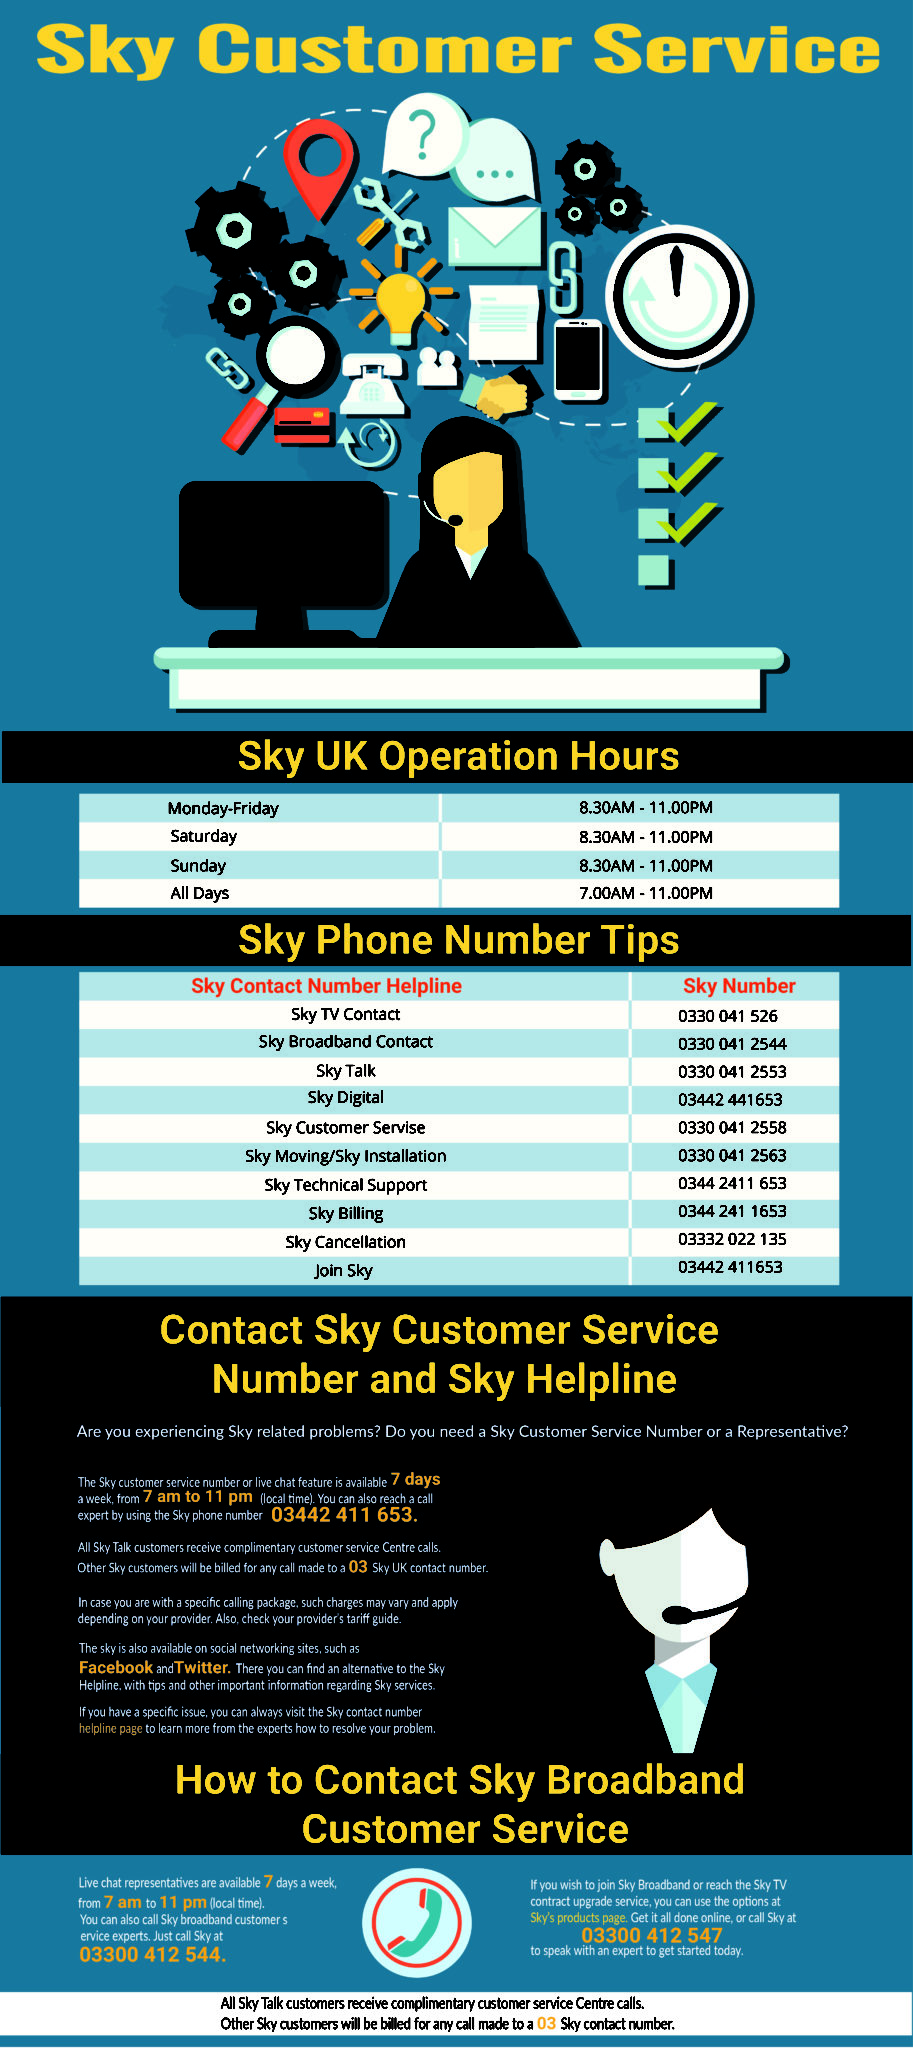 Sky Customer Service Contact Number